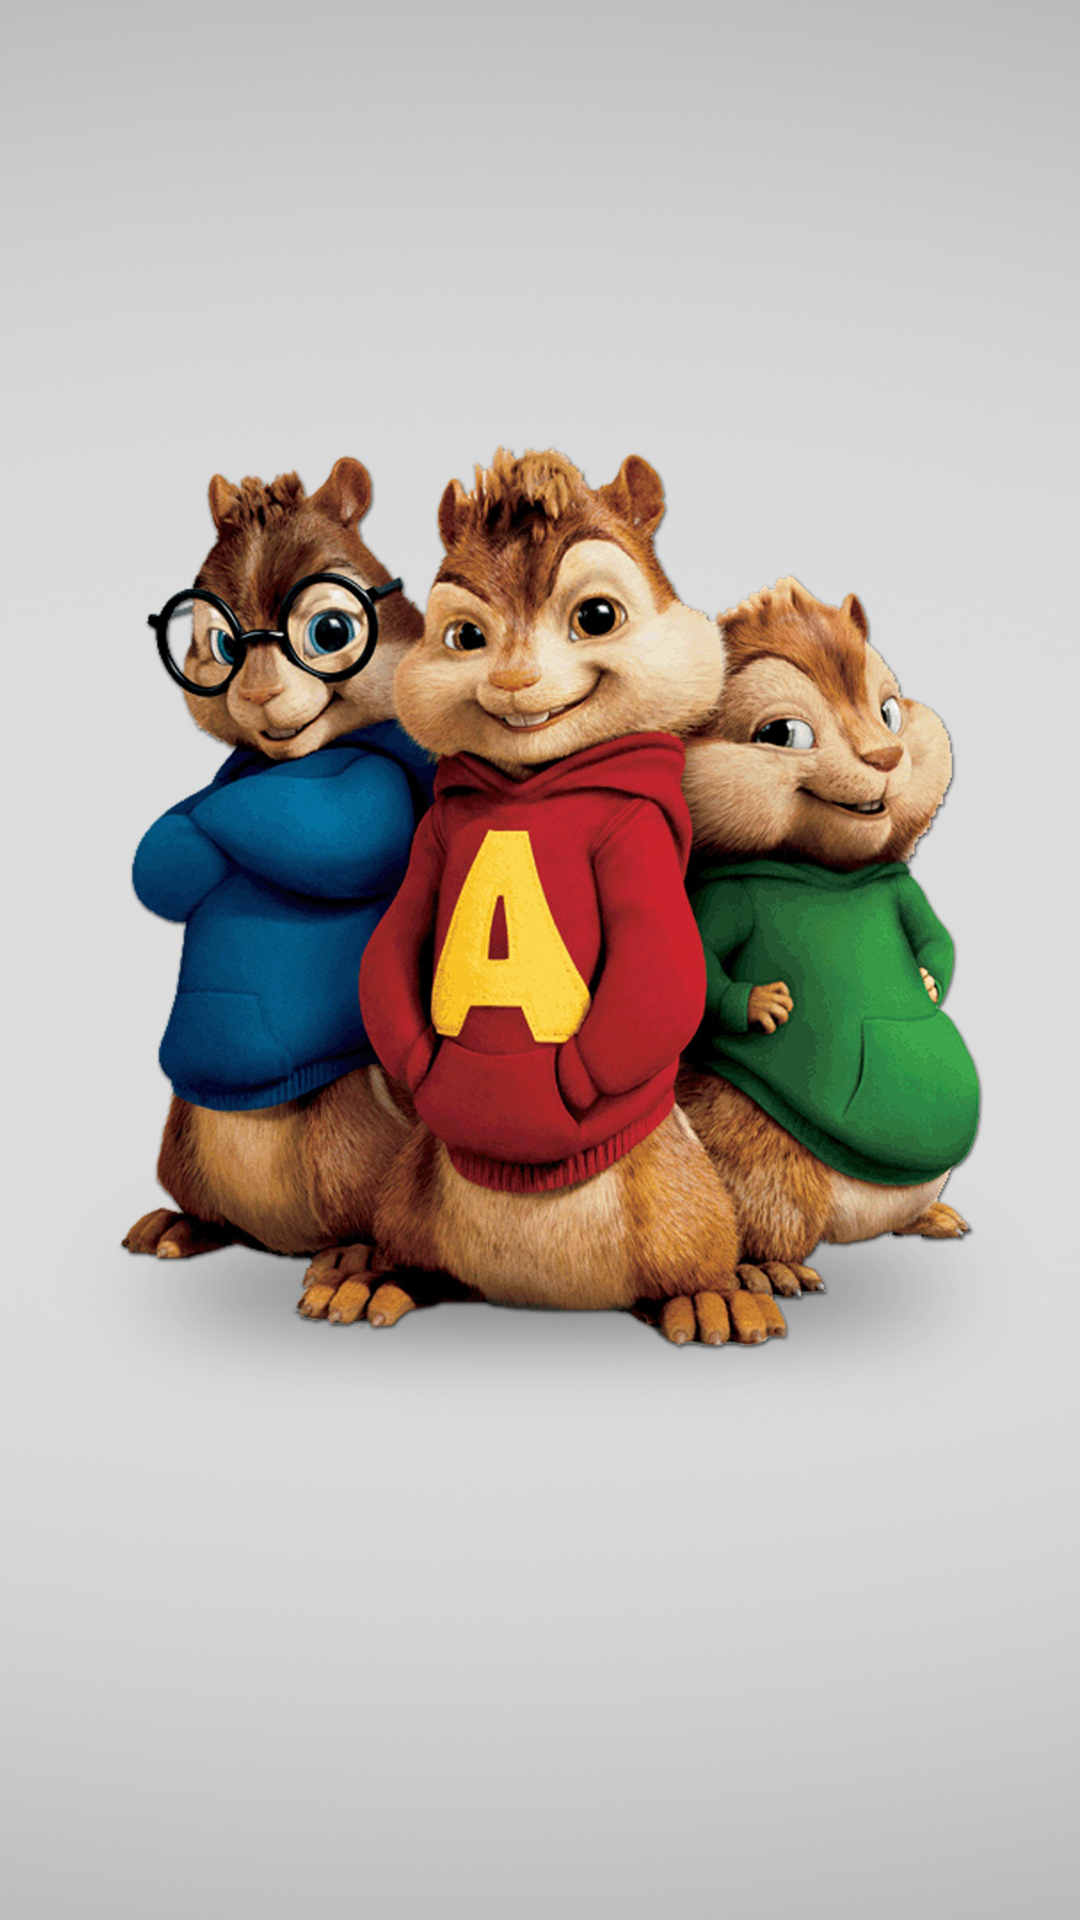 Cute Anime Characters Wallpapers Alvin And The Chipmunks Htc One Wallpaper Best Htc One